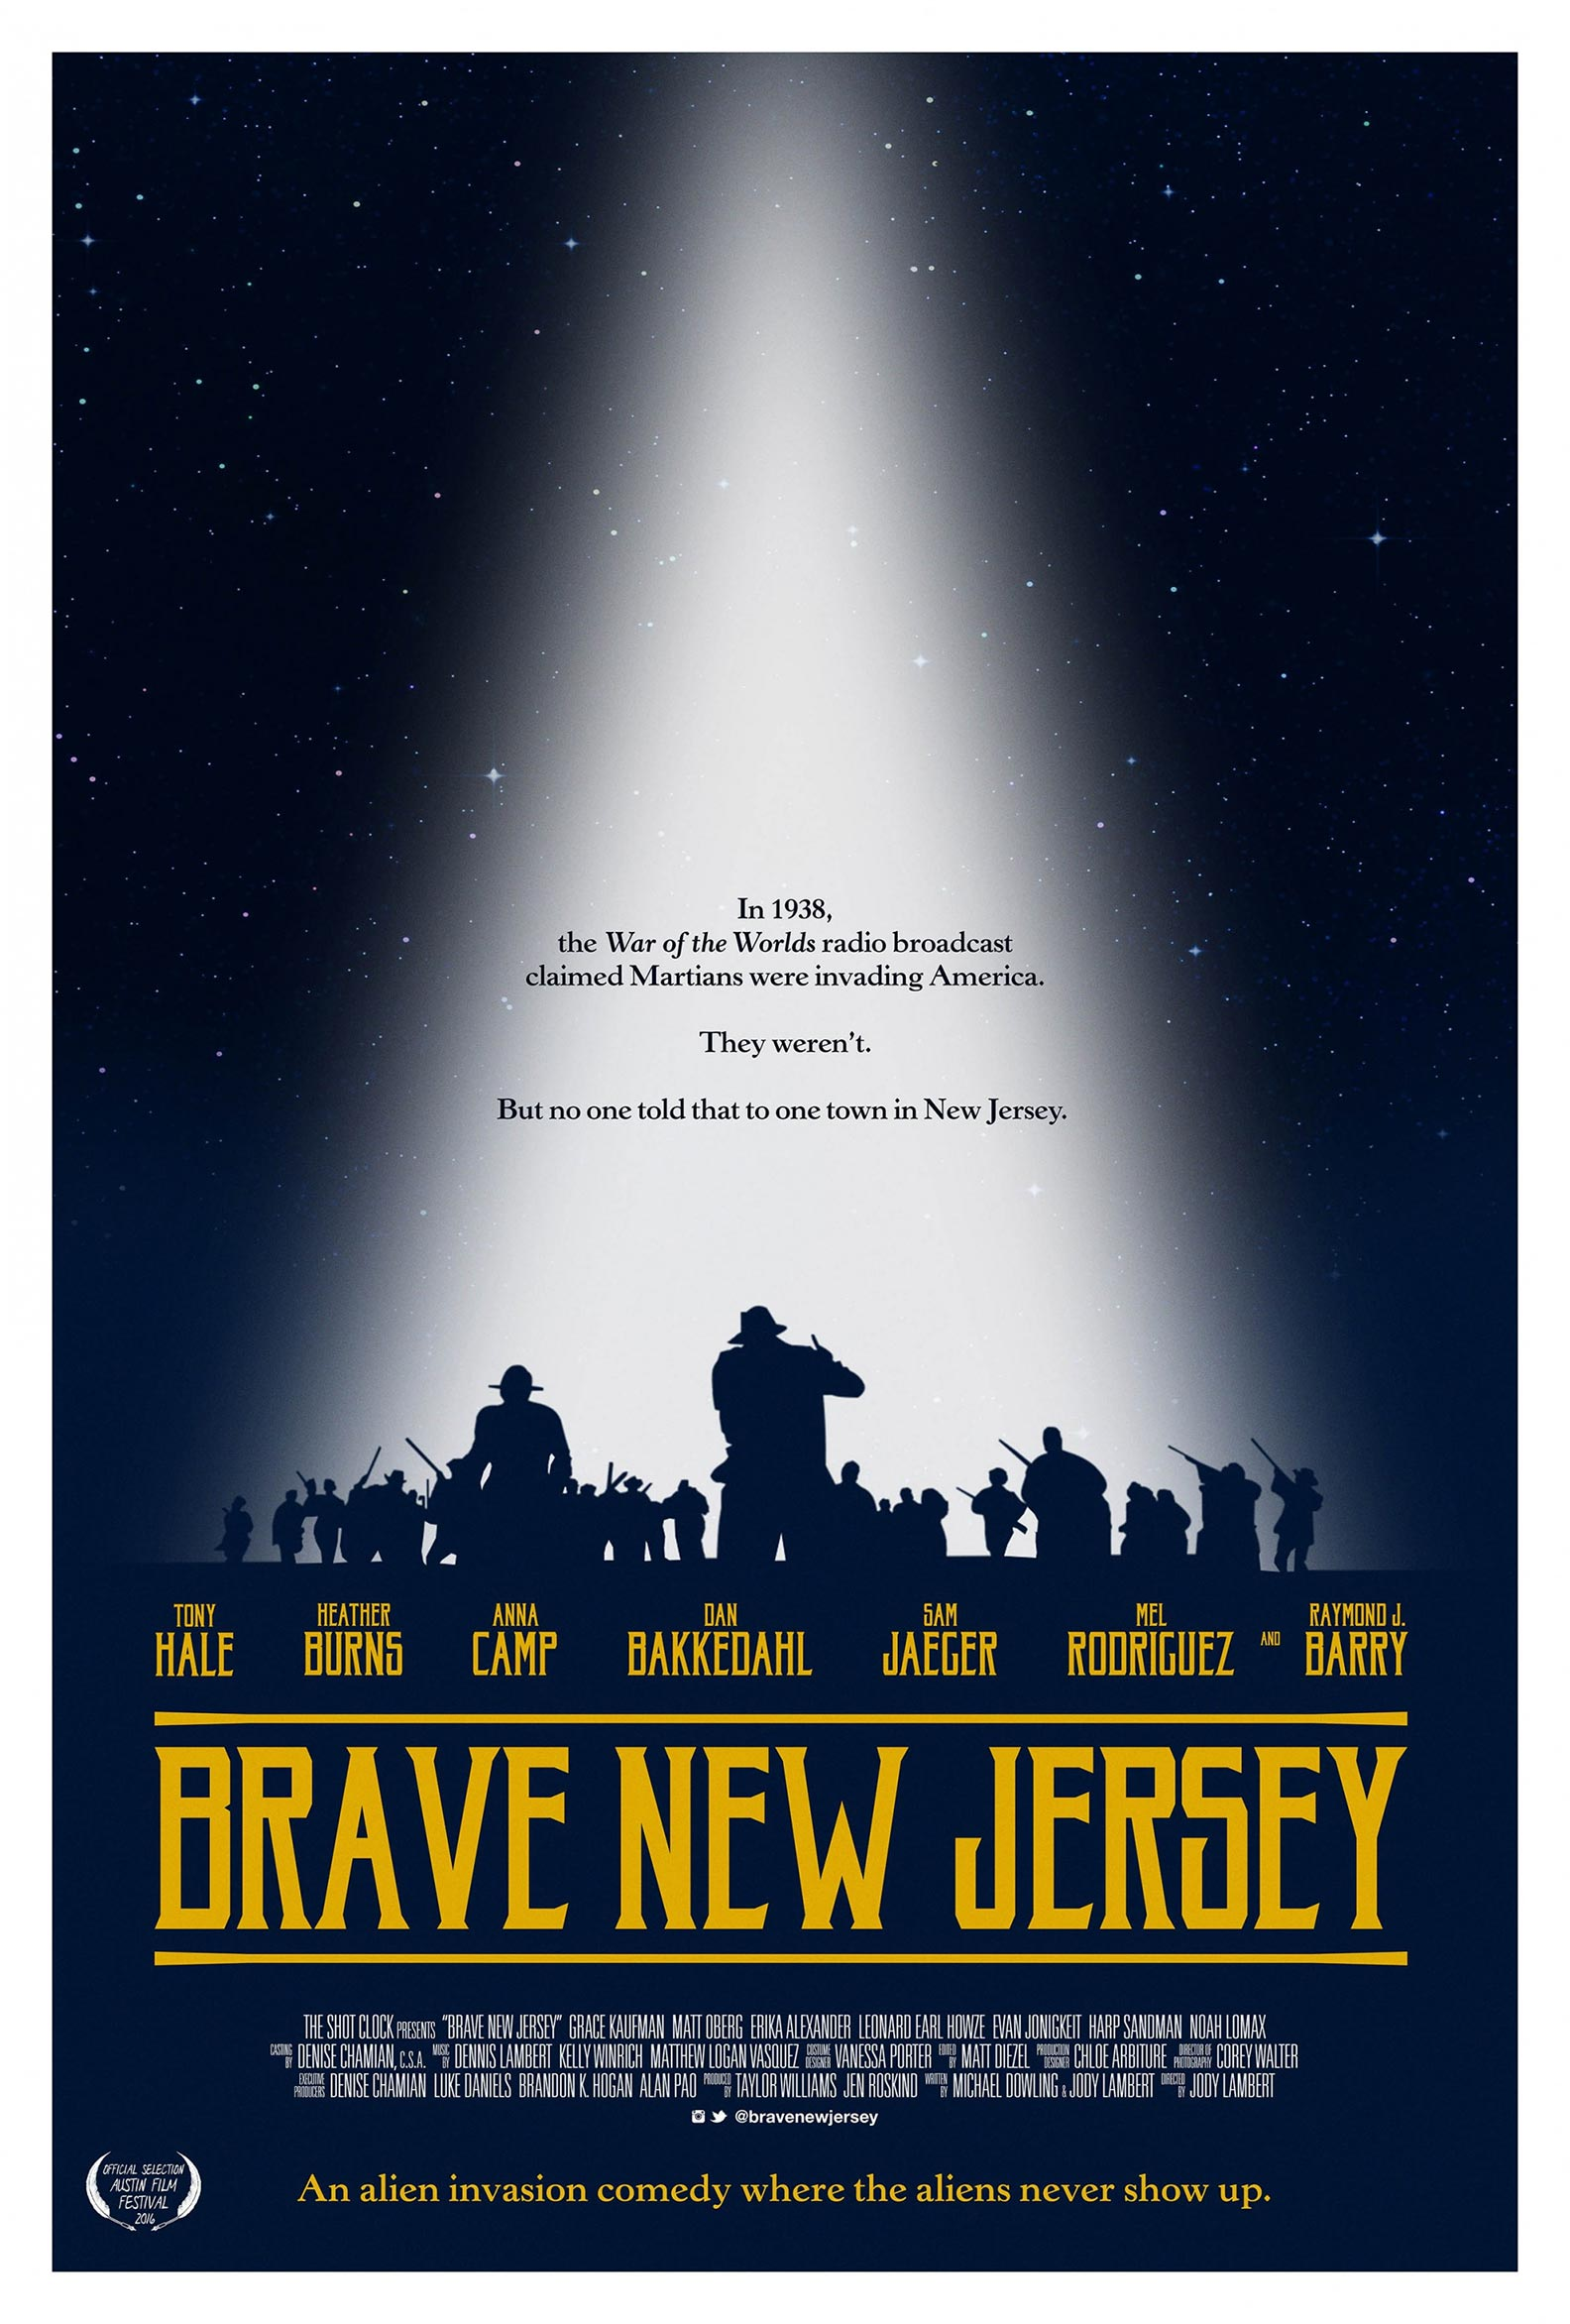 brave new jersey (2017) poster #1 - trailer addict